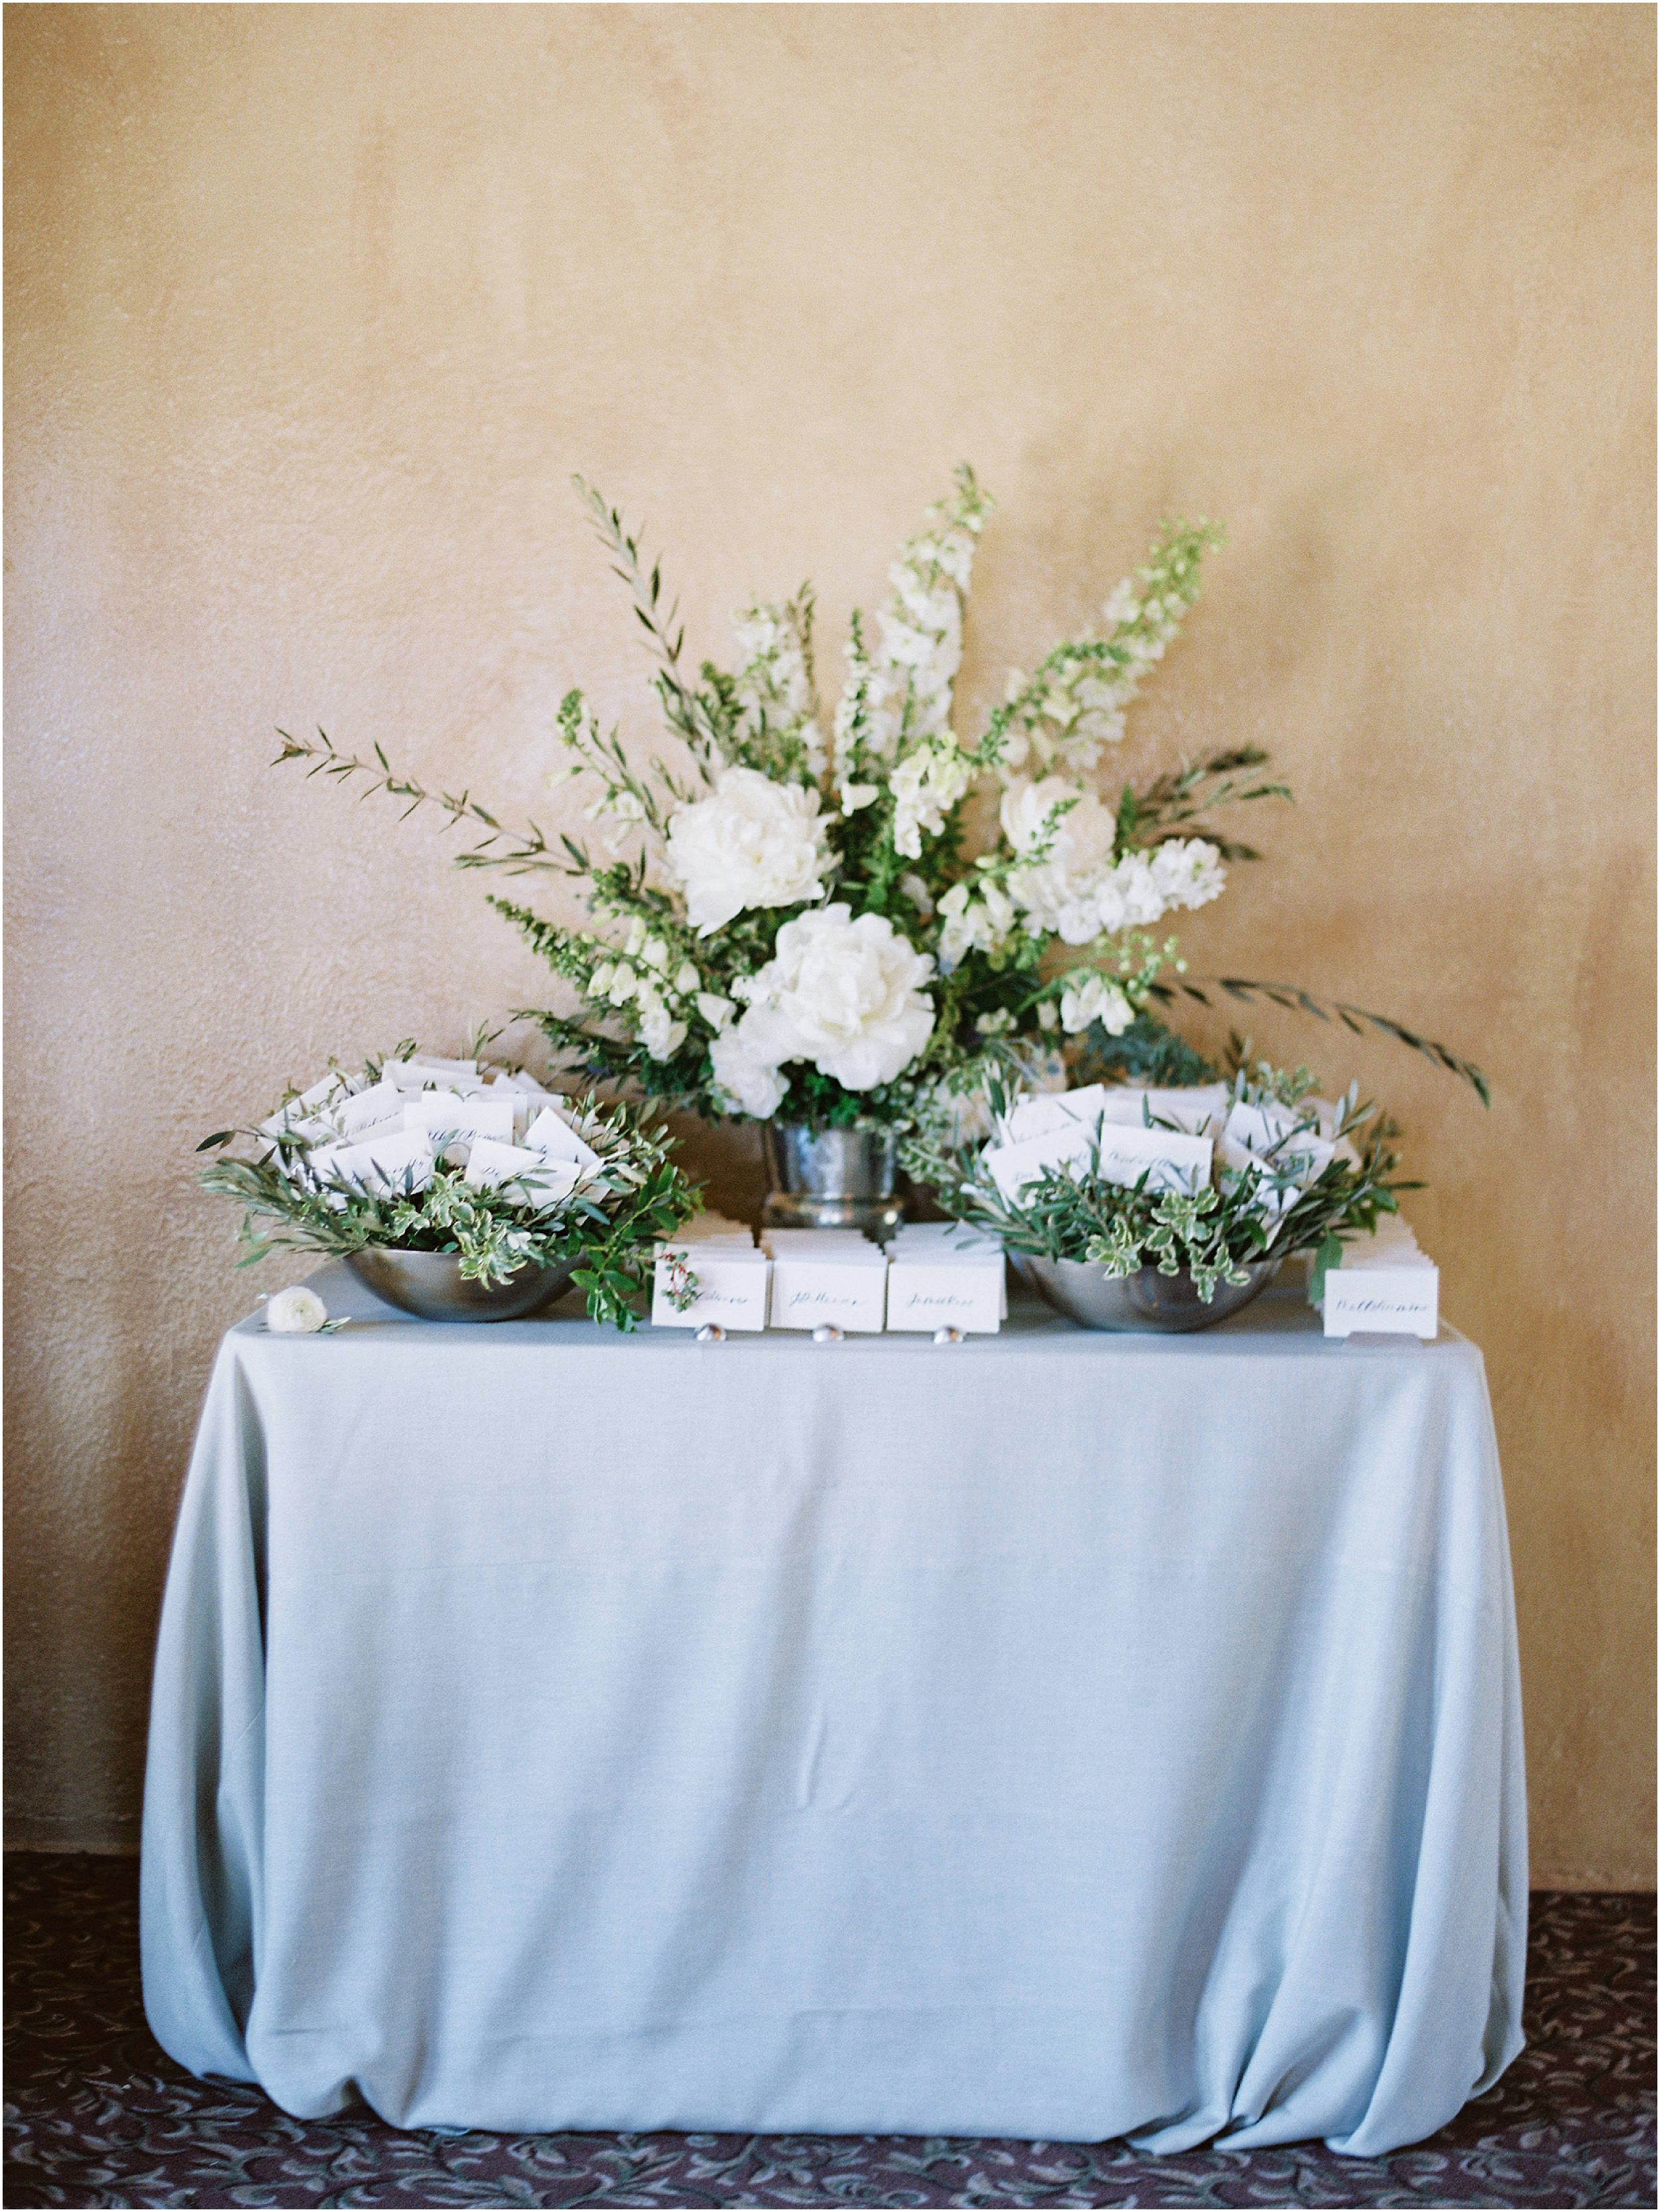 JeremiahRachelPhotography_GreenwoodEvents_LaVentaInnWedding_PalosVerdesWedding0043.JPG